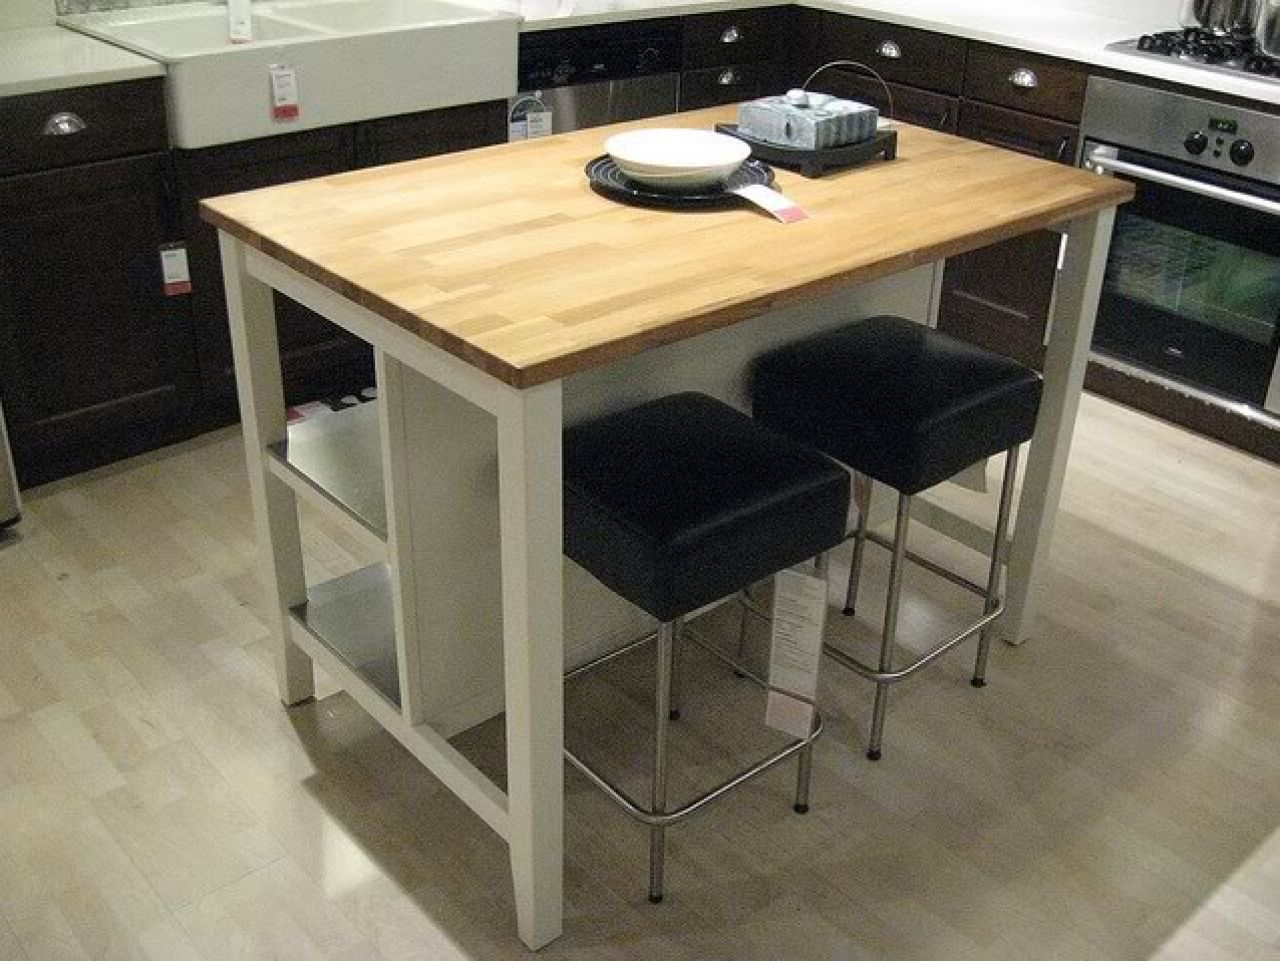 Ikea kücheninsel stenstorp  Kitchen Island Ikea 1 Amazing Pictures | Kitchen islands ...